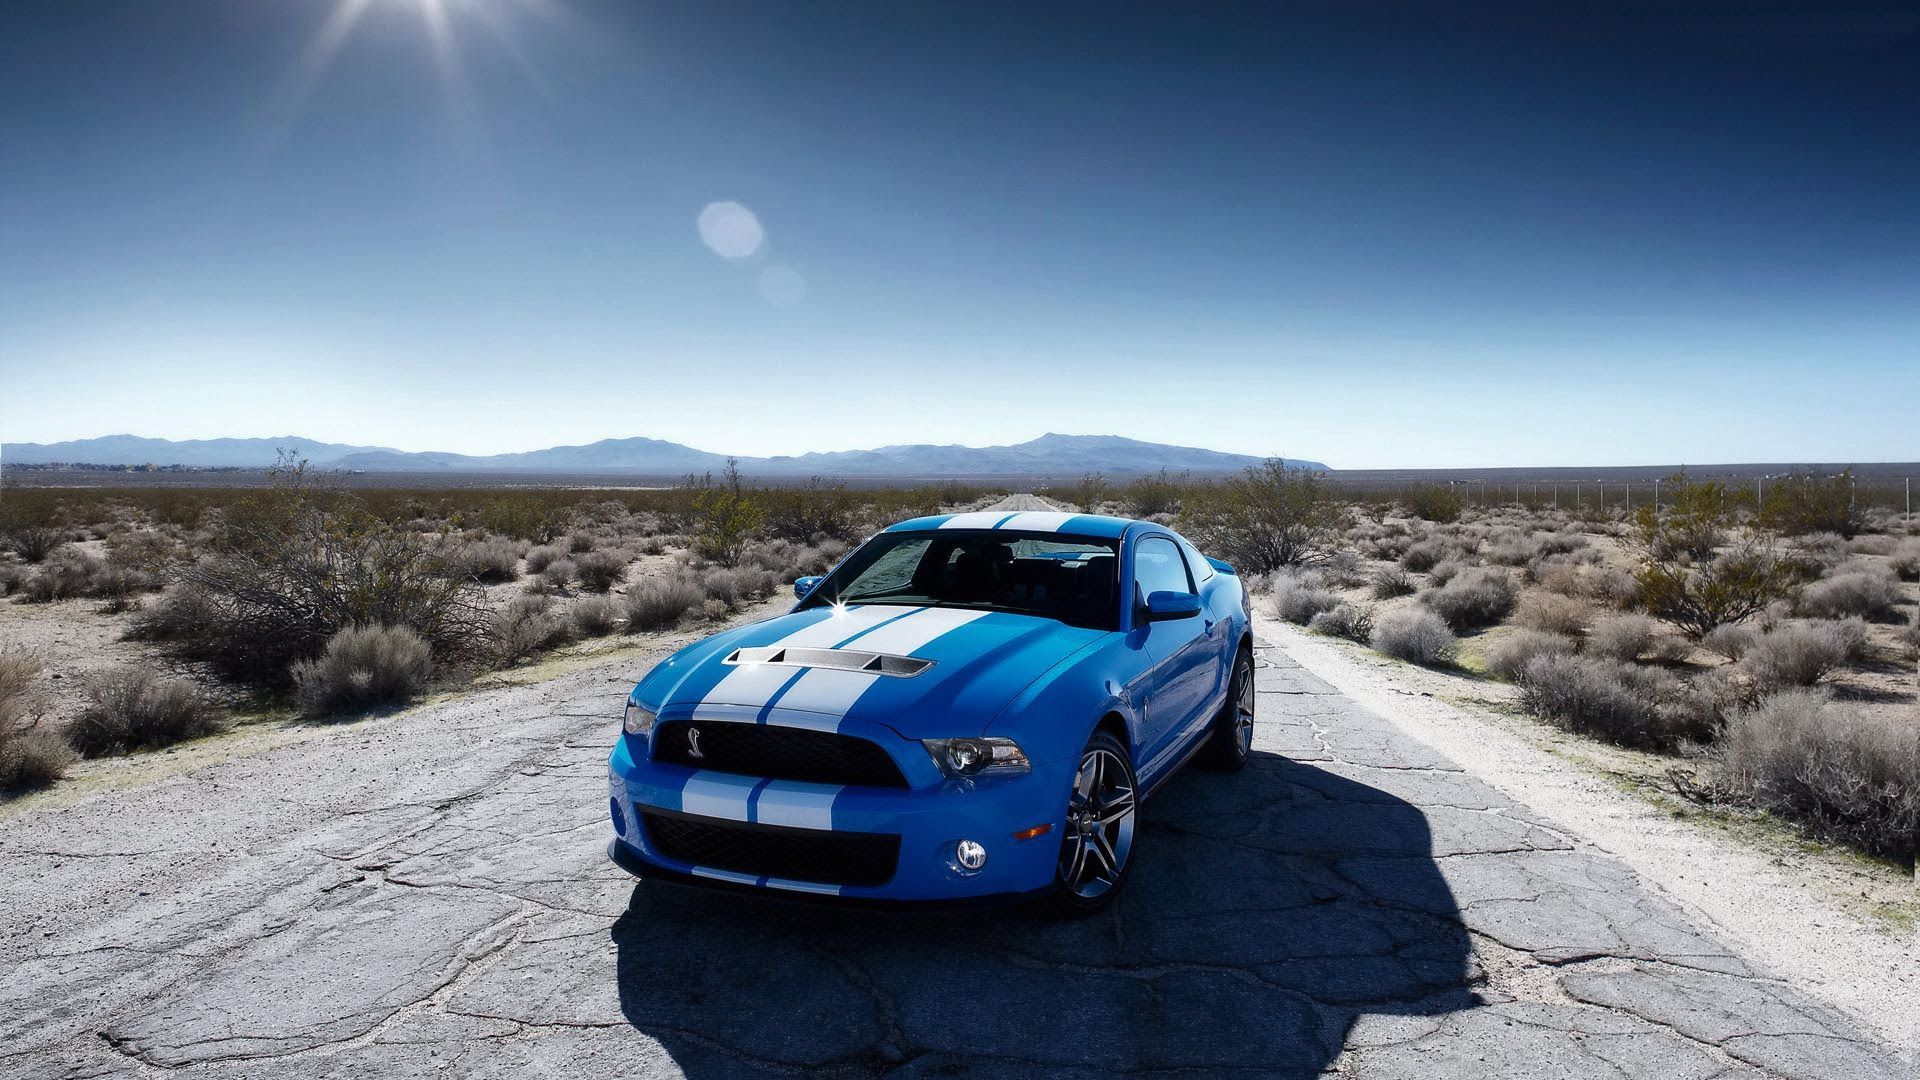 30 HD Mustang Wallpapers For Free Download